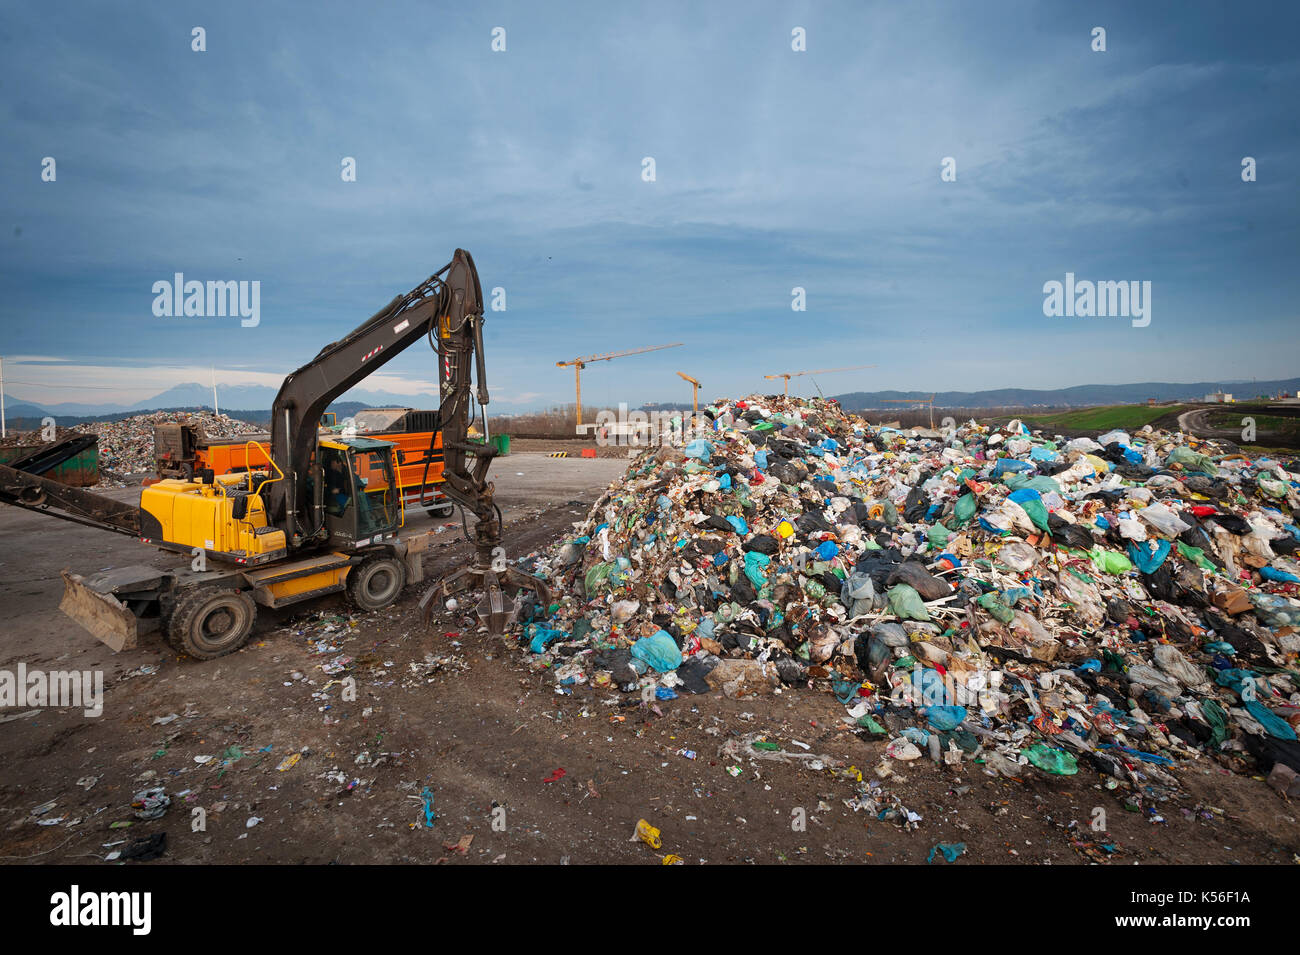 Bulldozer with mechanical arm grabbing waste from a pile at city landfill. Waste management, ecology concept. - Stock Image